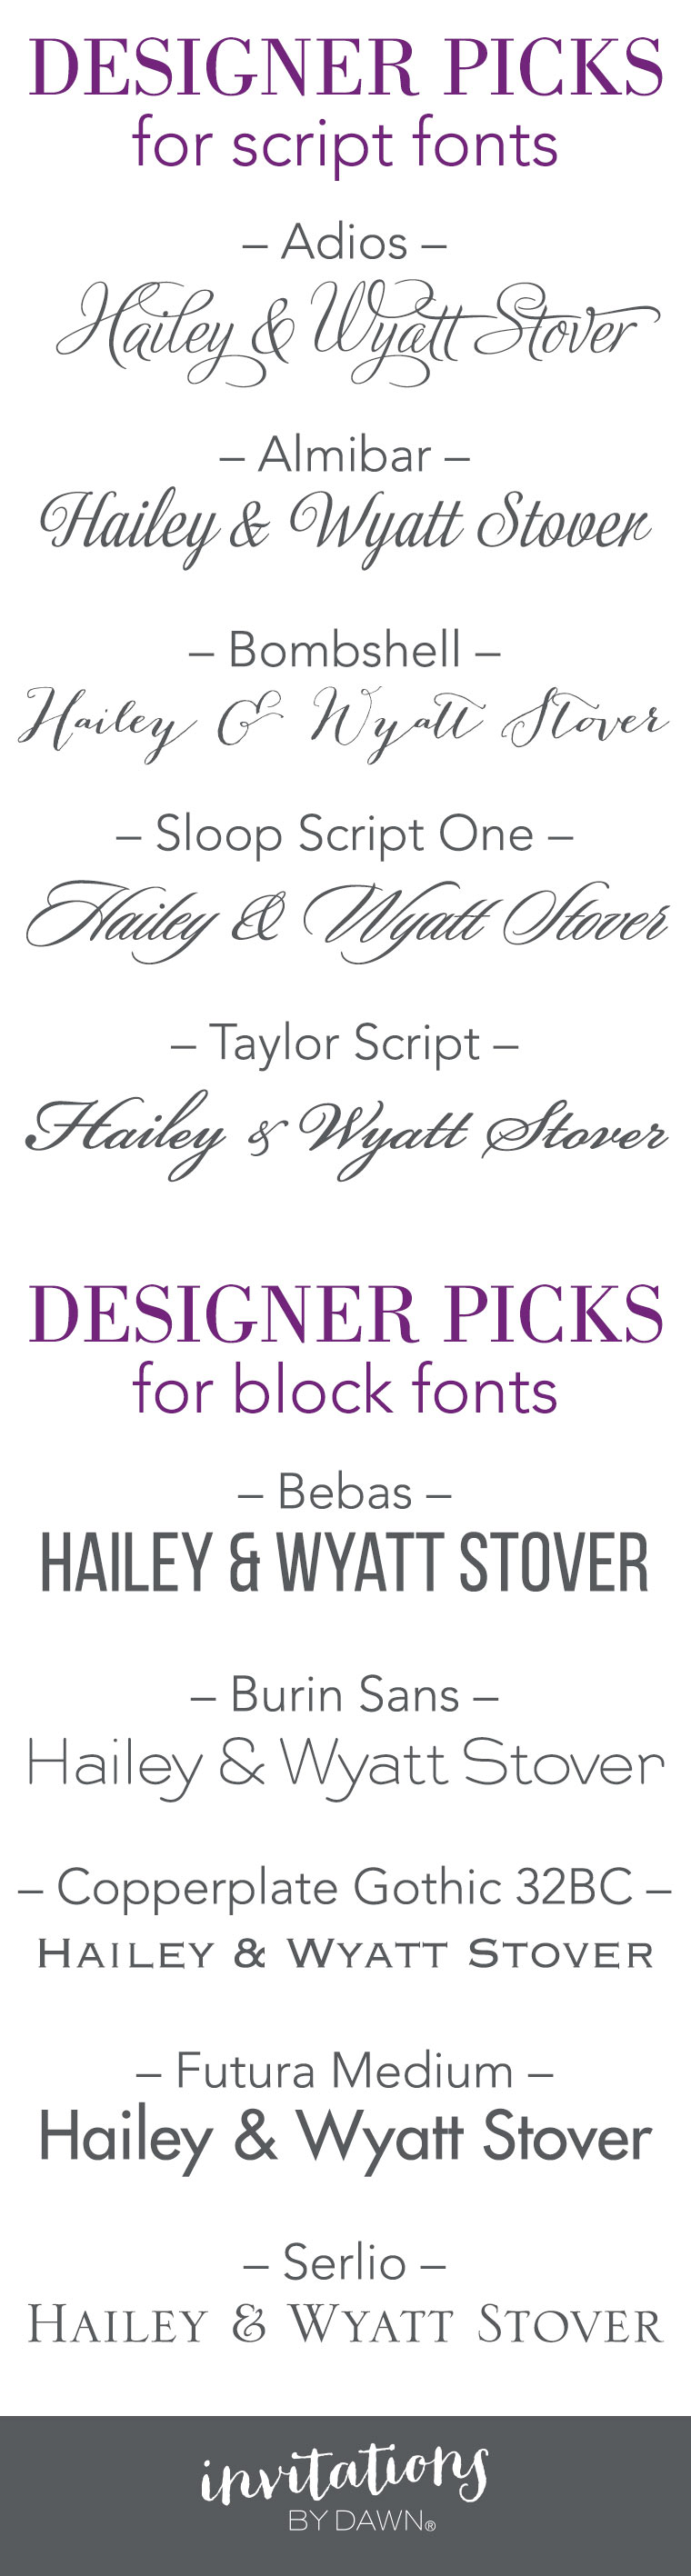 Designer Picks for Script and Block Fonts